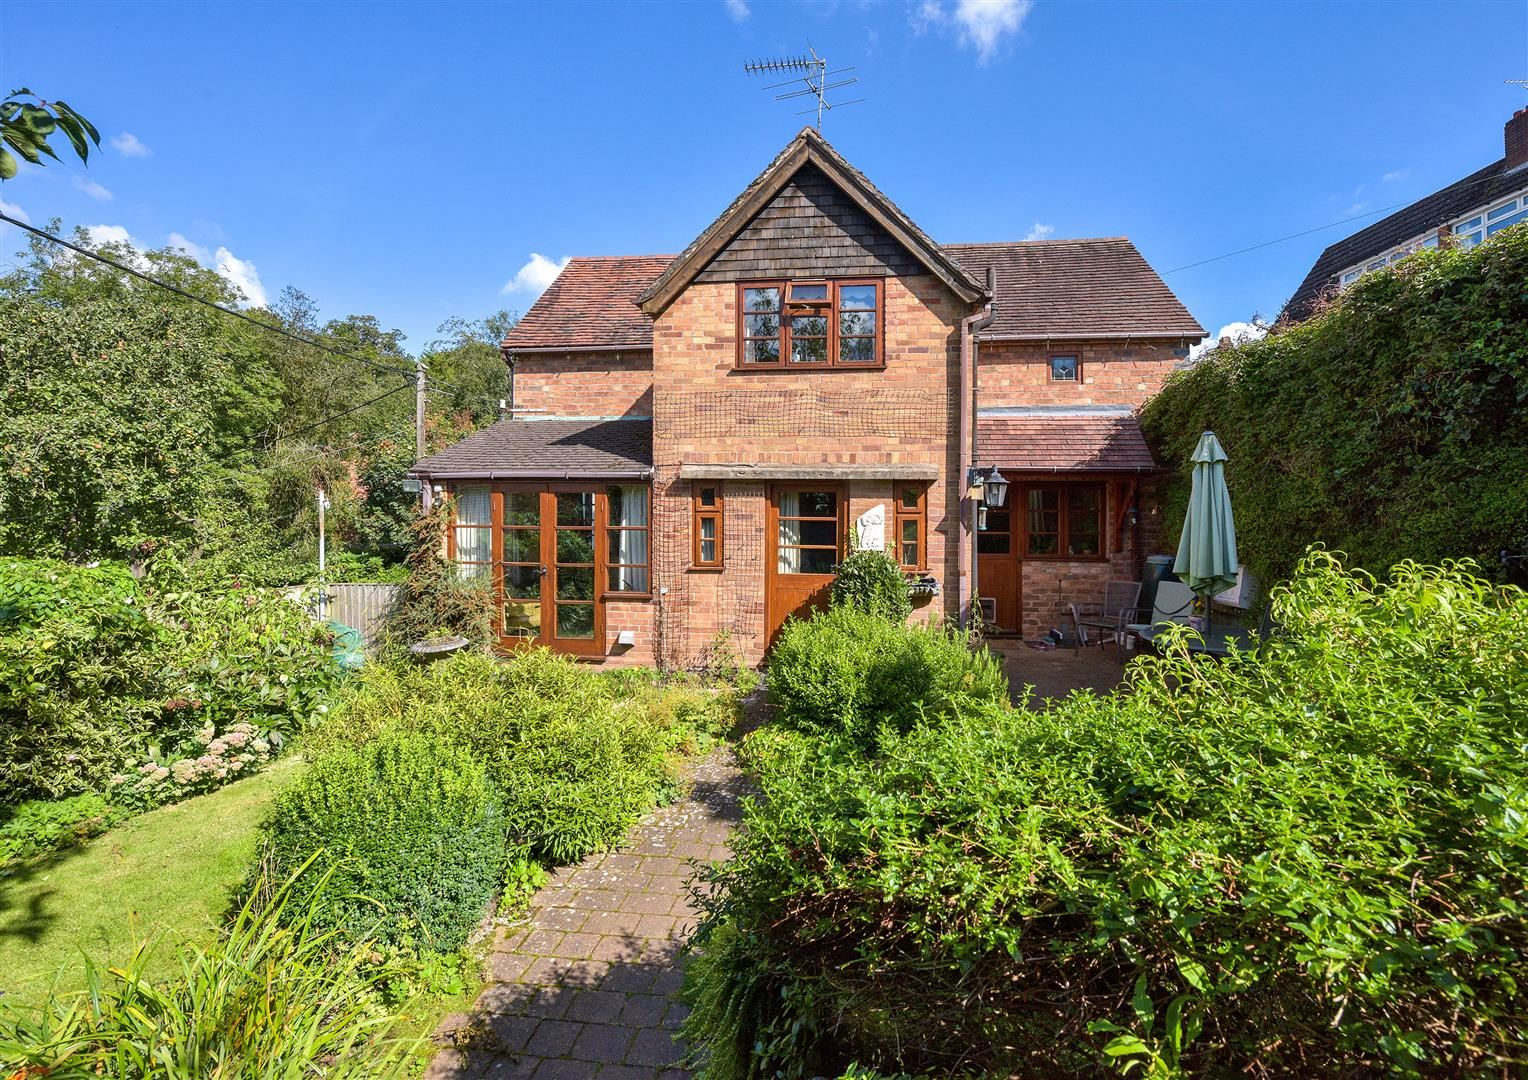 2 bed semi-detached for sale in Clent  - Property Image 1